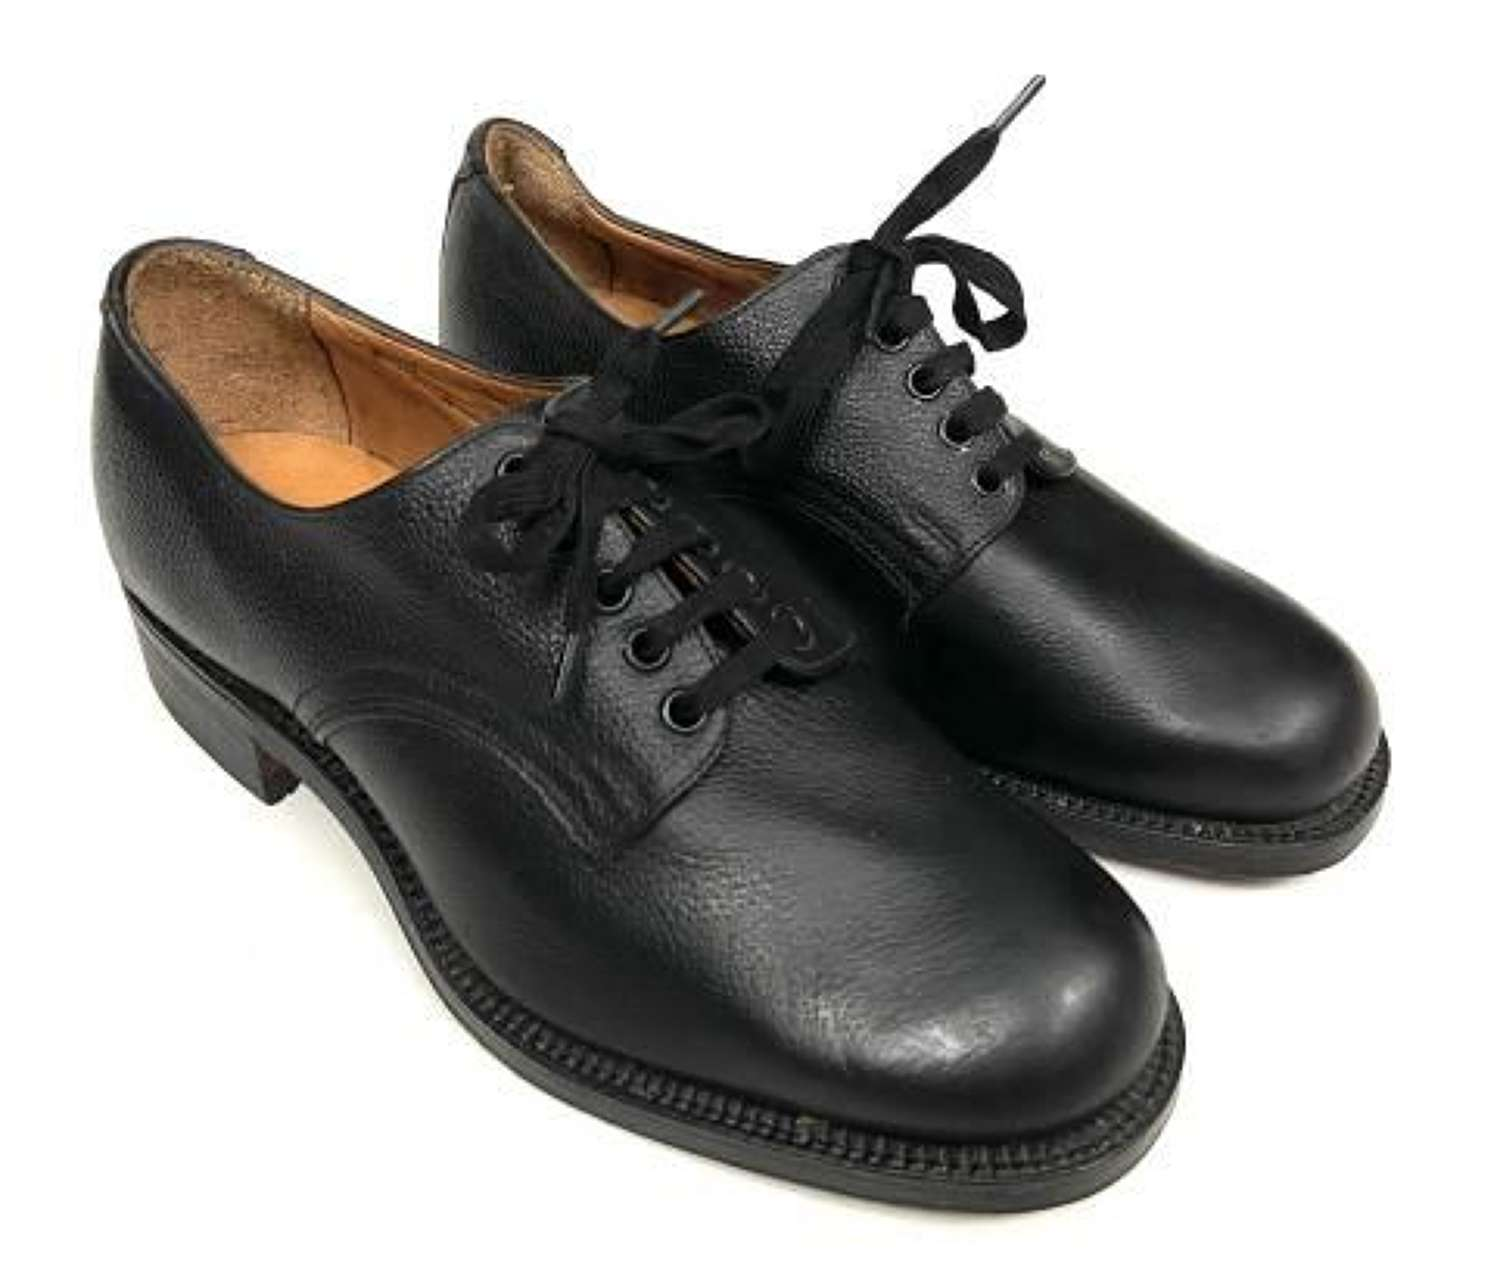 Original 1952 Dated Women's Issue Shoes by 'John Cave' - Size 4